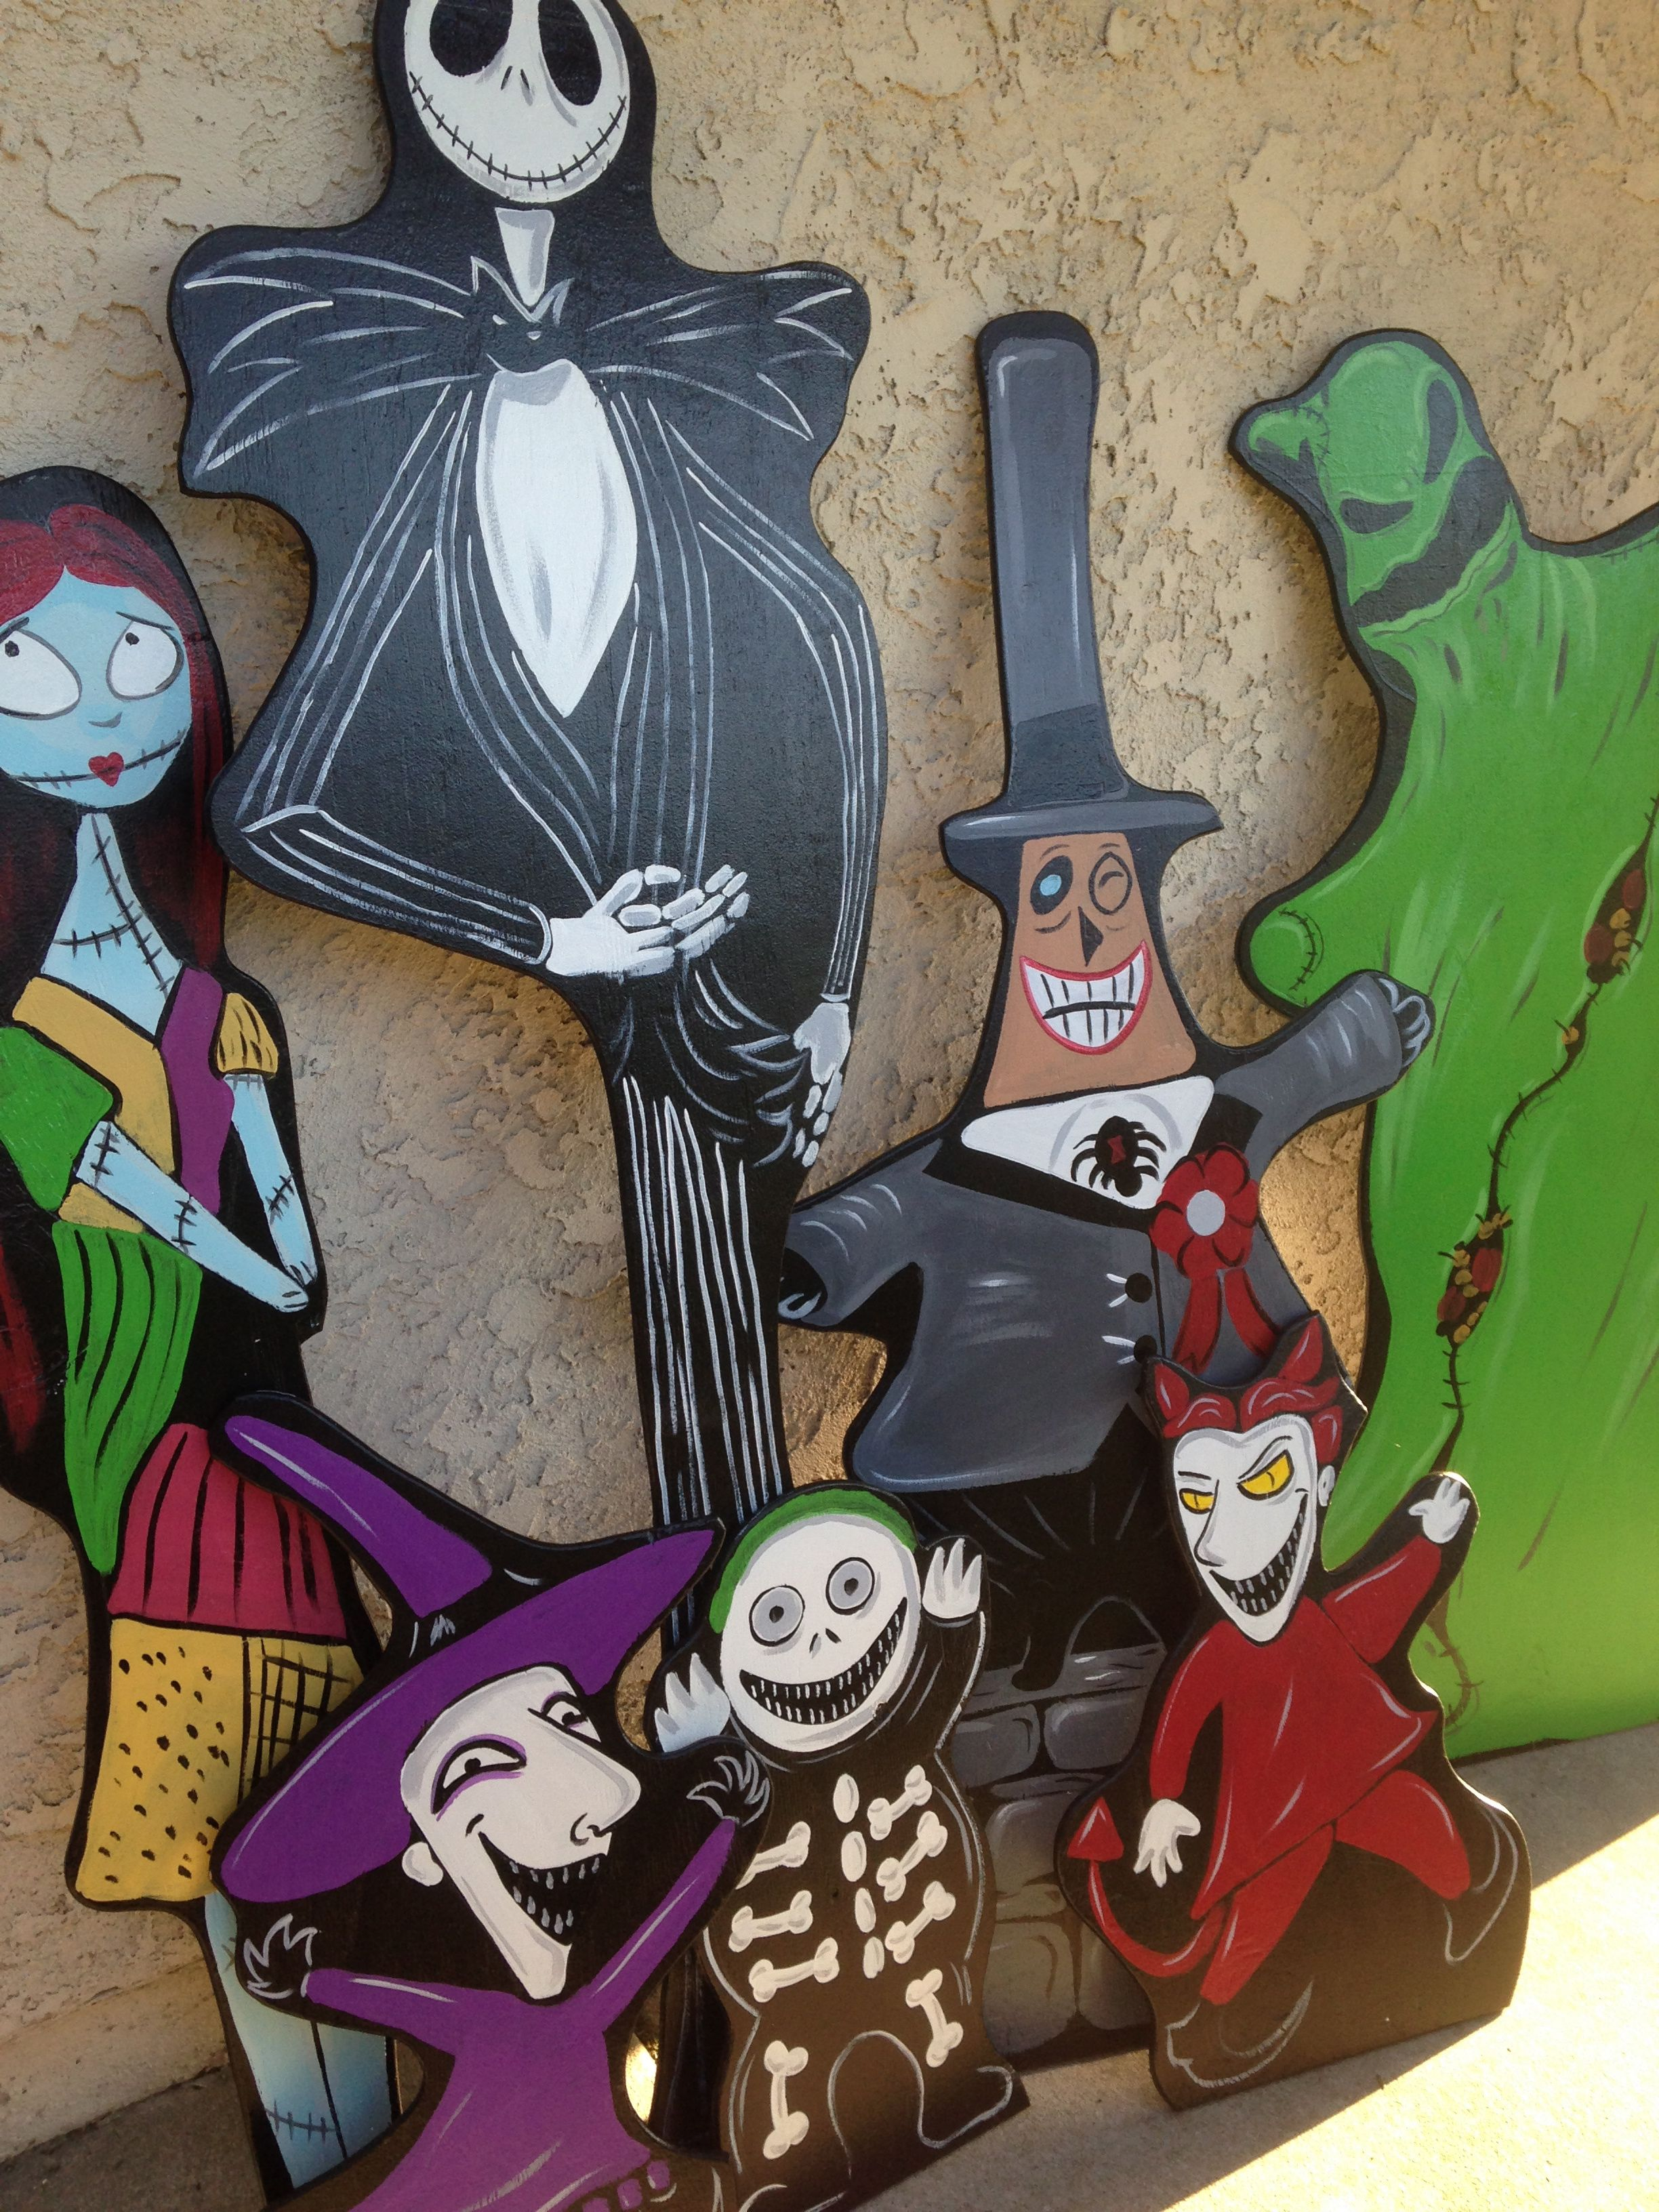 purchase halloween lawn decorations wwwholidaylawncharacterscom nightmare before christmas decorations nightmare before